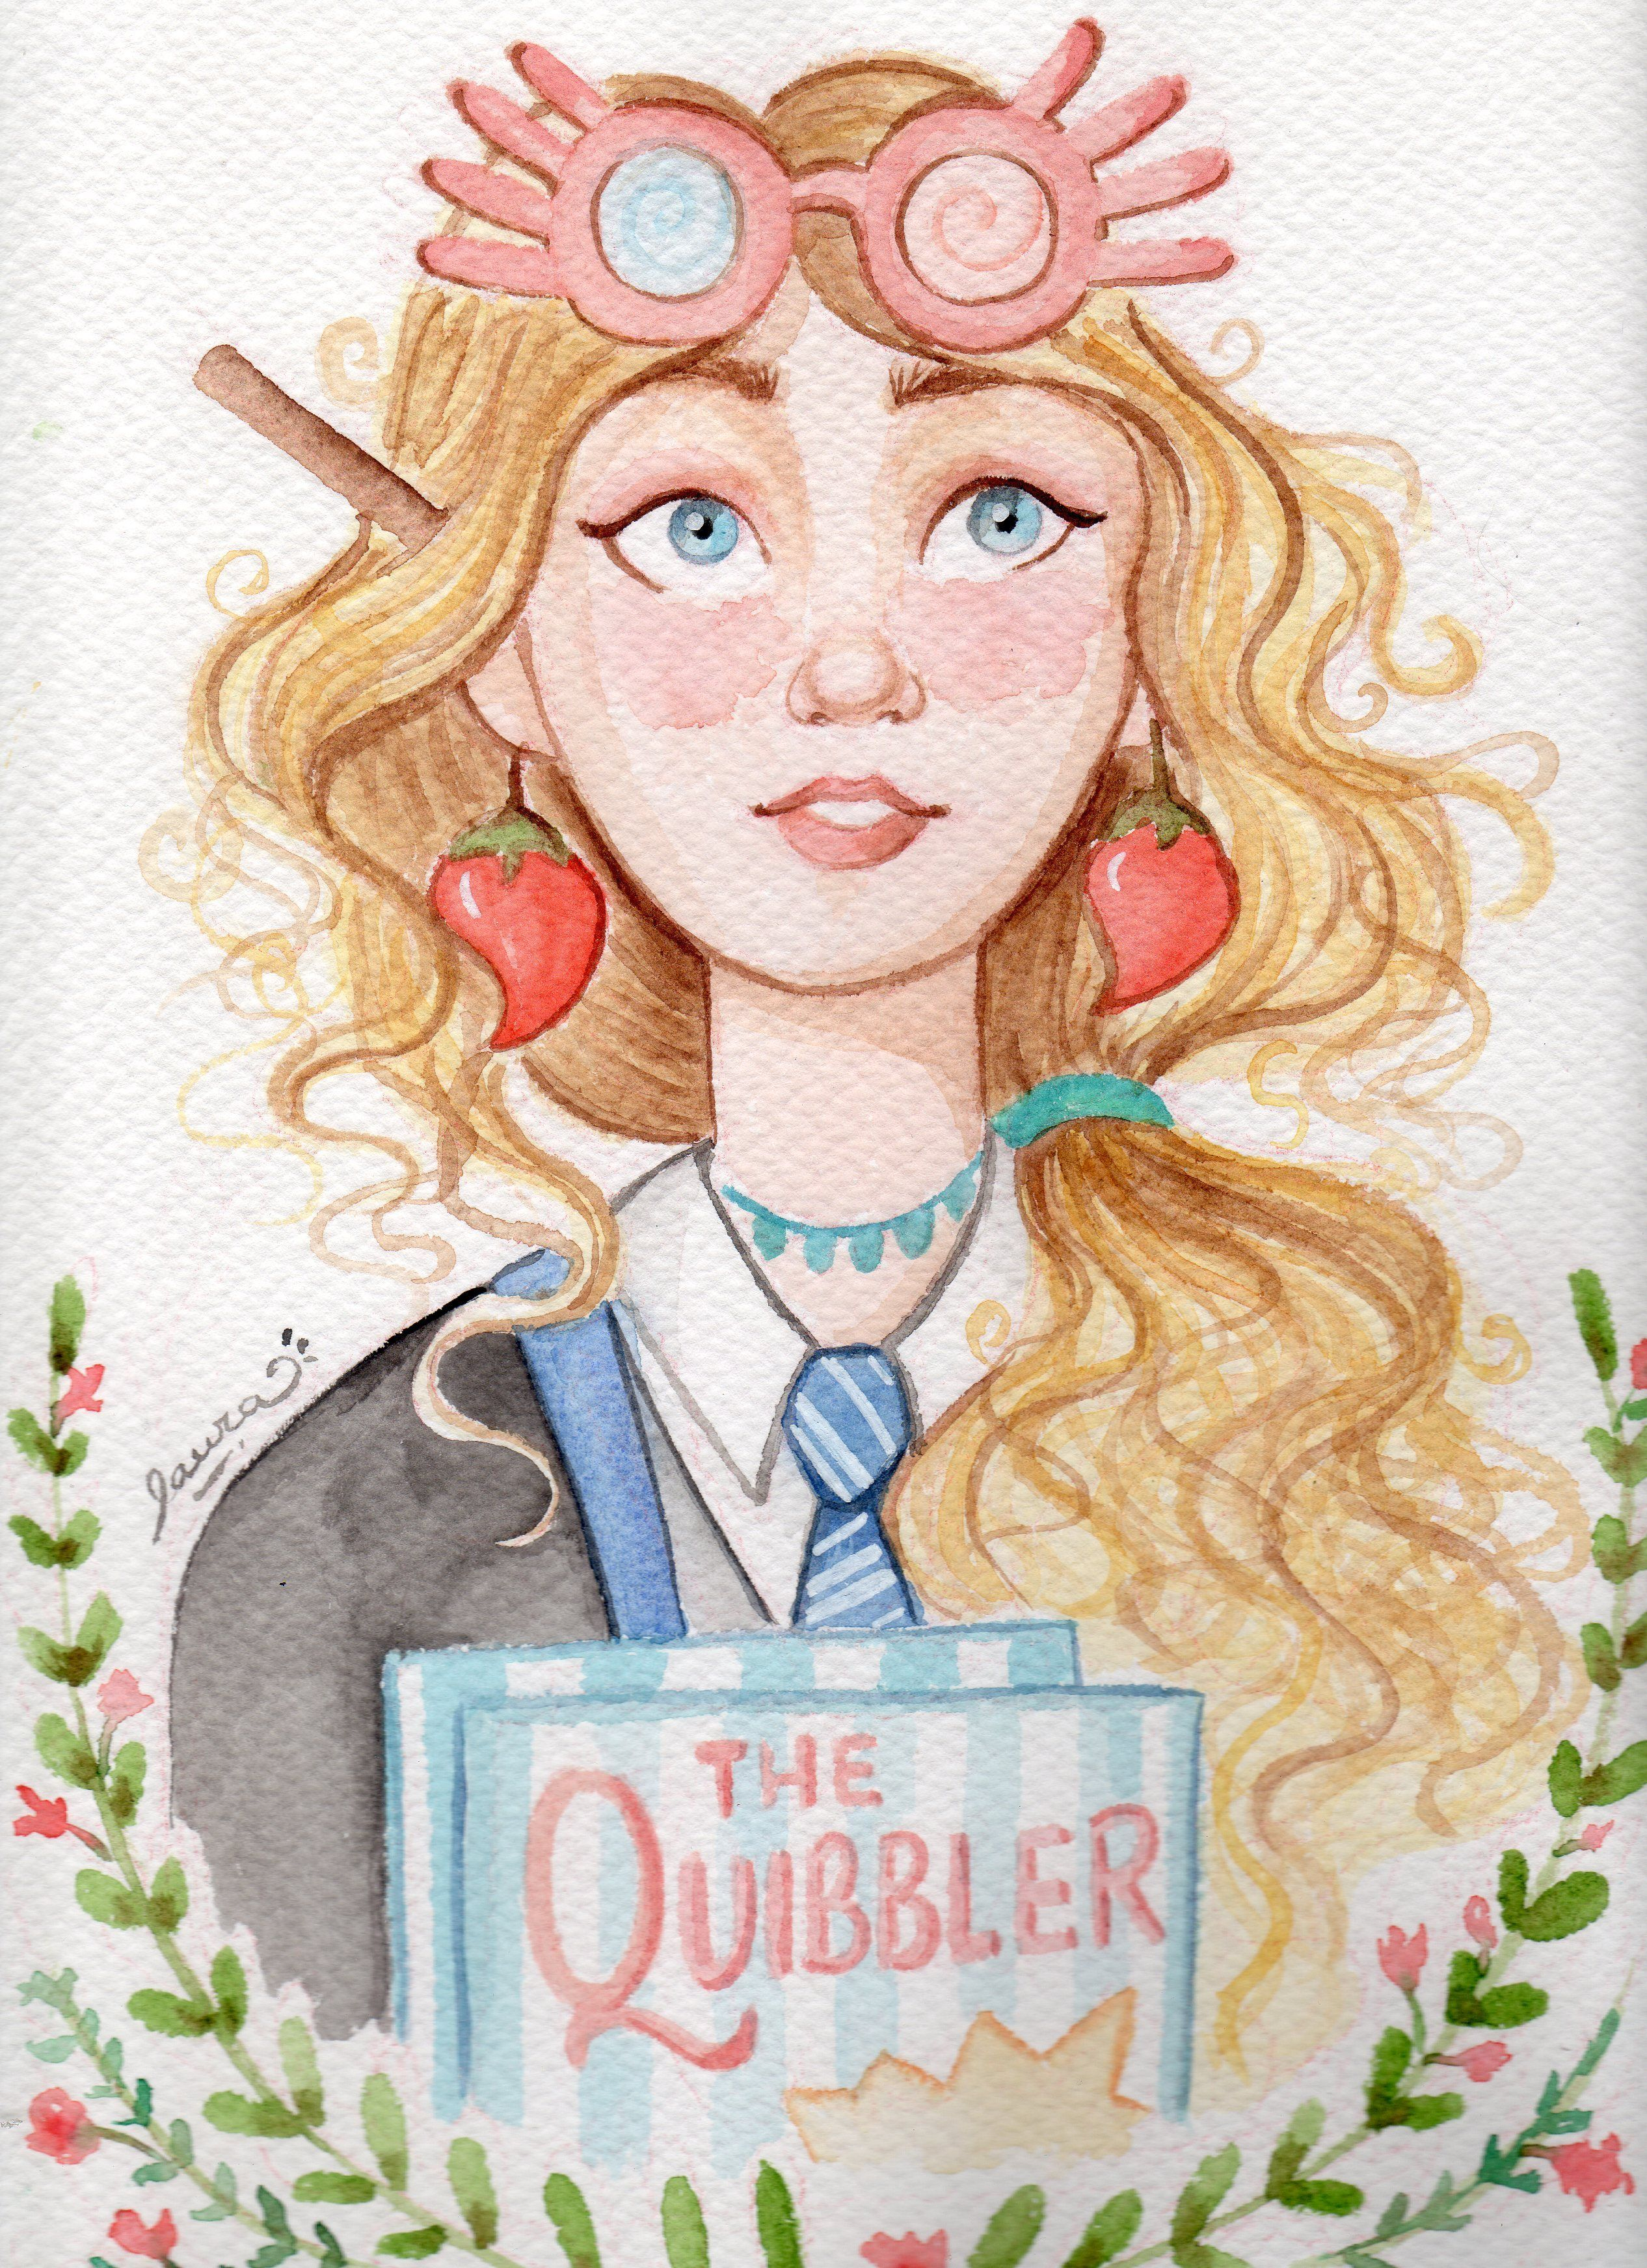 Image Result For Harry Potter Drawings Luna Lovegood Ravenclaw Harry Potter Sketch Harry Potter Drawings Harry Potter Fan Art